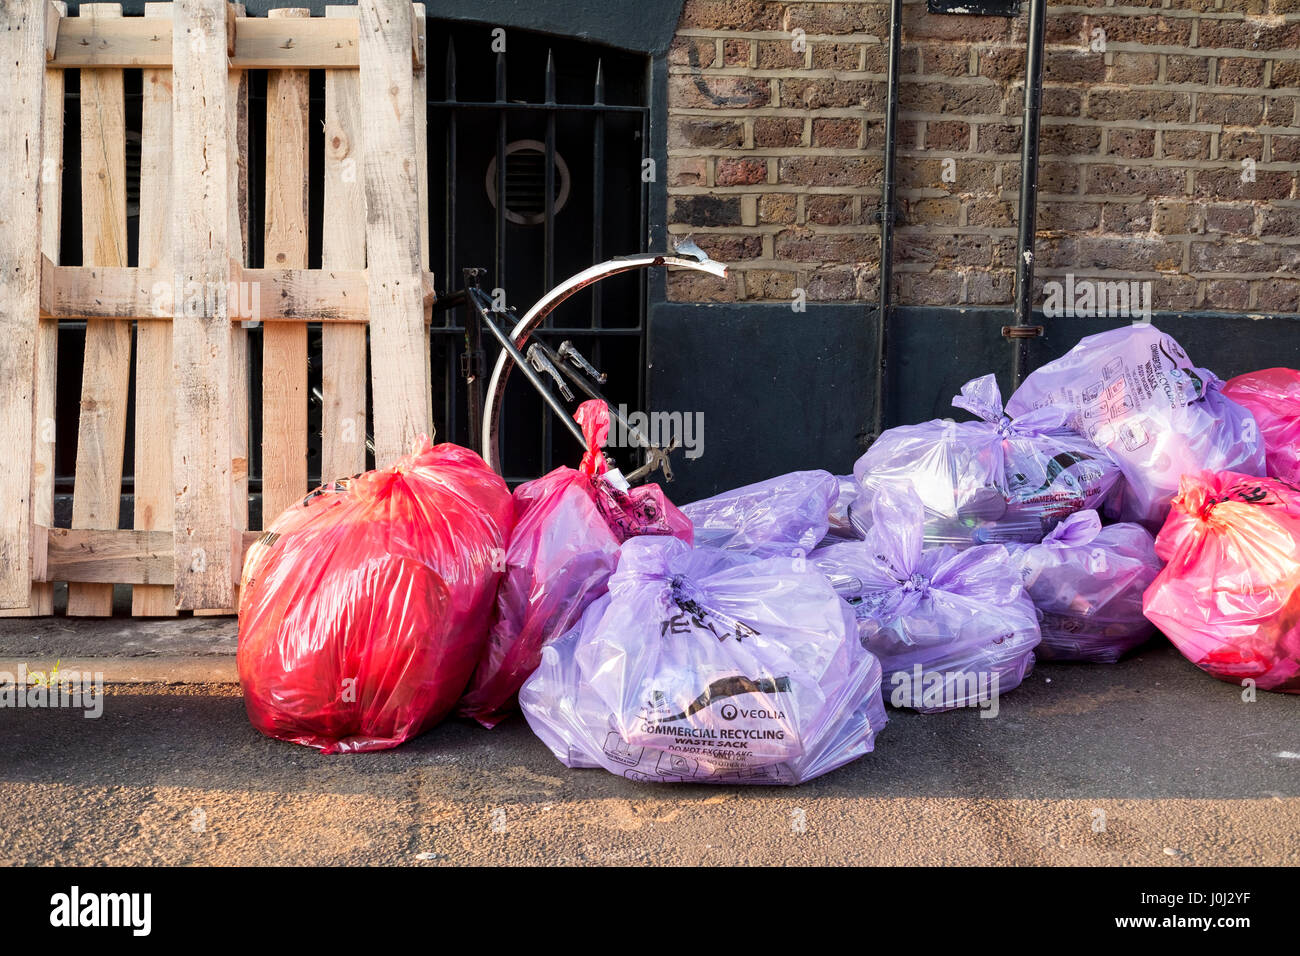 Bags of commercial rubbish and recycling left out for collection Stock Photo